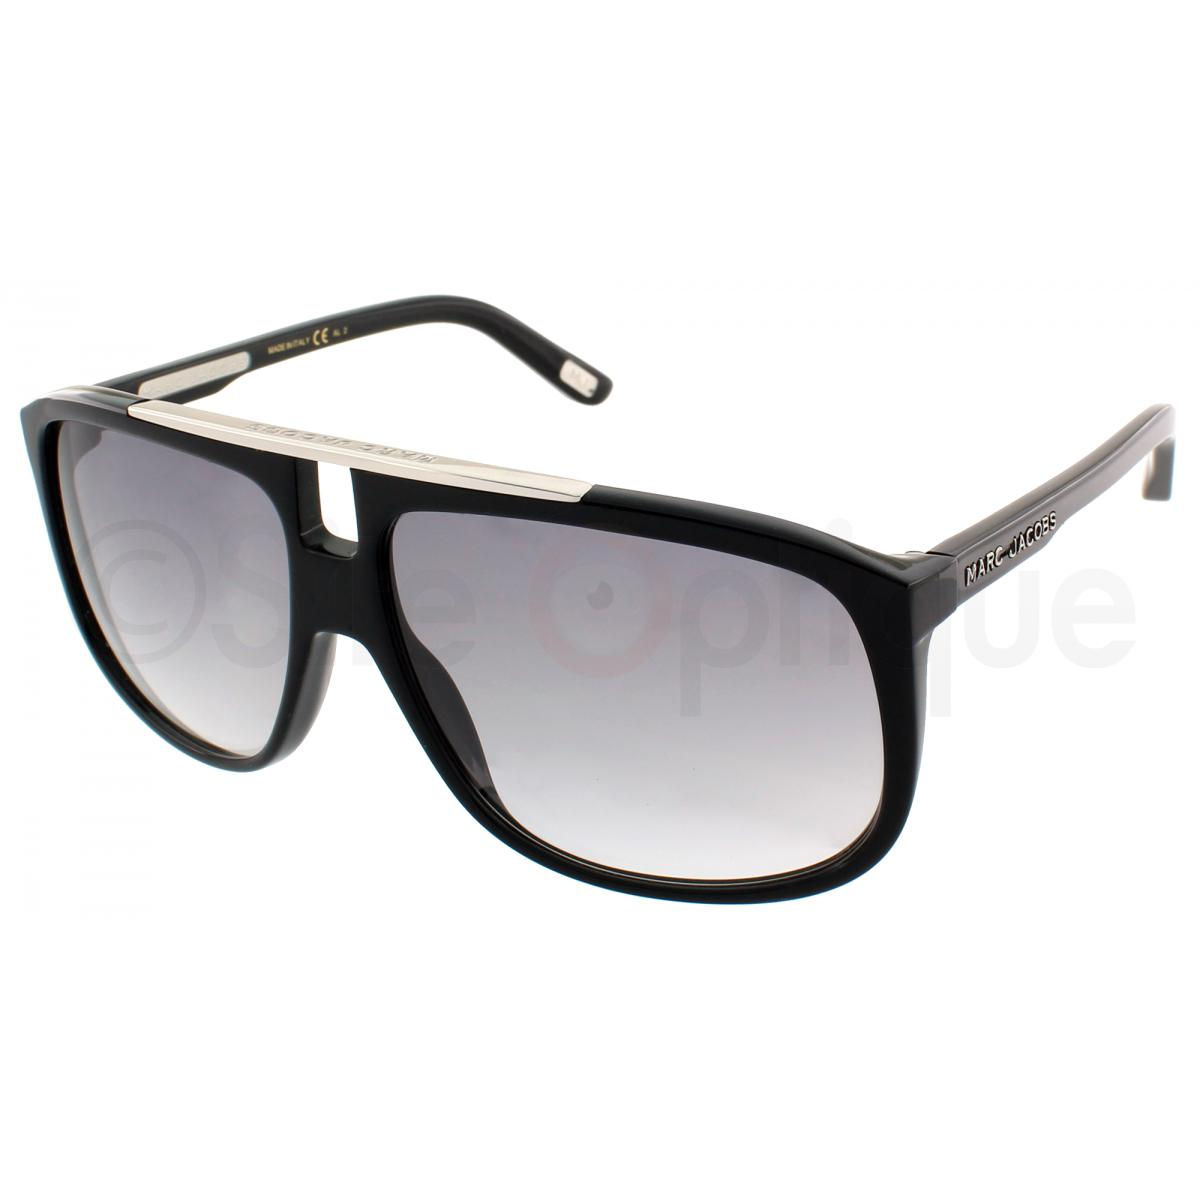 9ea9da4a6d02ea MARC JACOBS - MJ 252S 807LF – Site optique